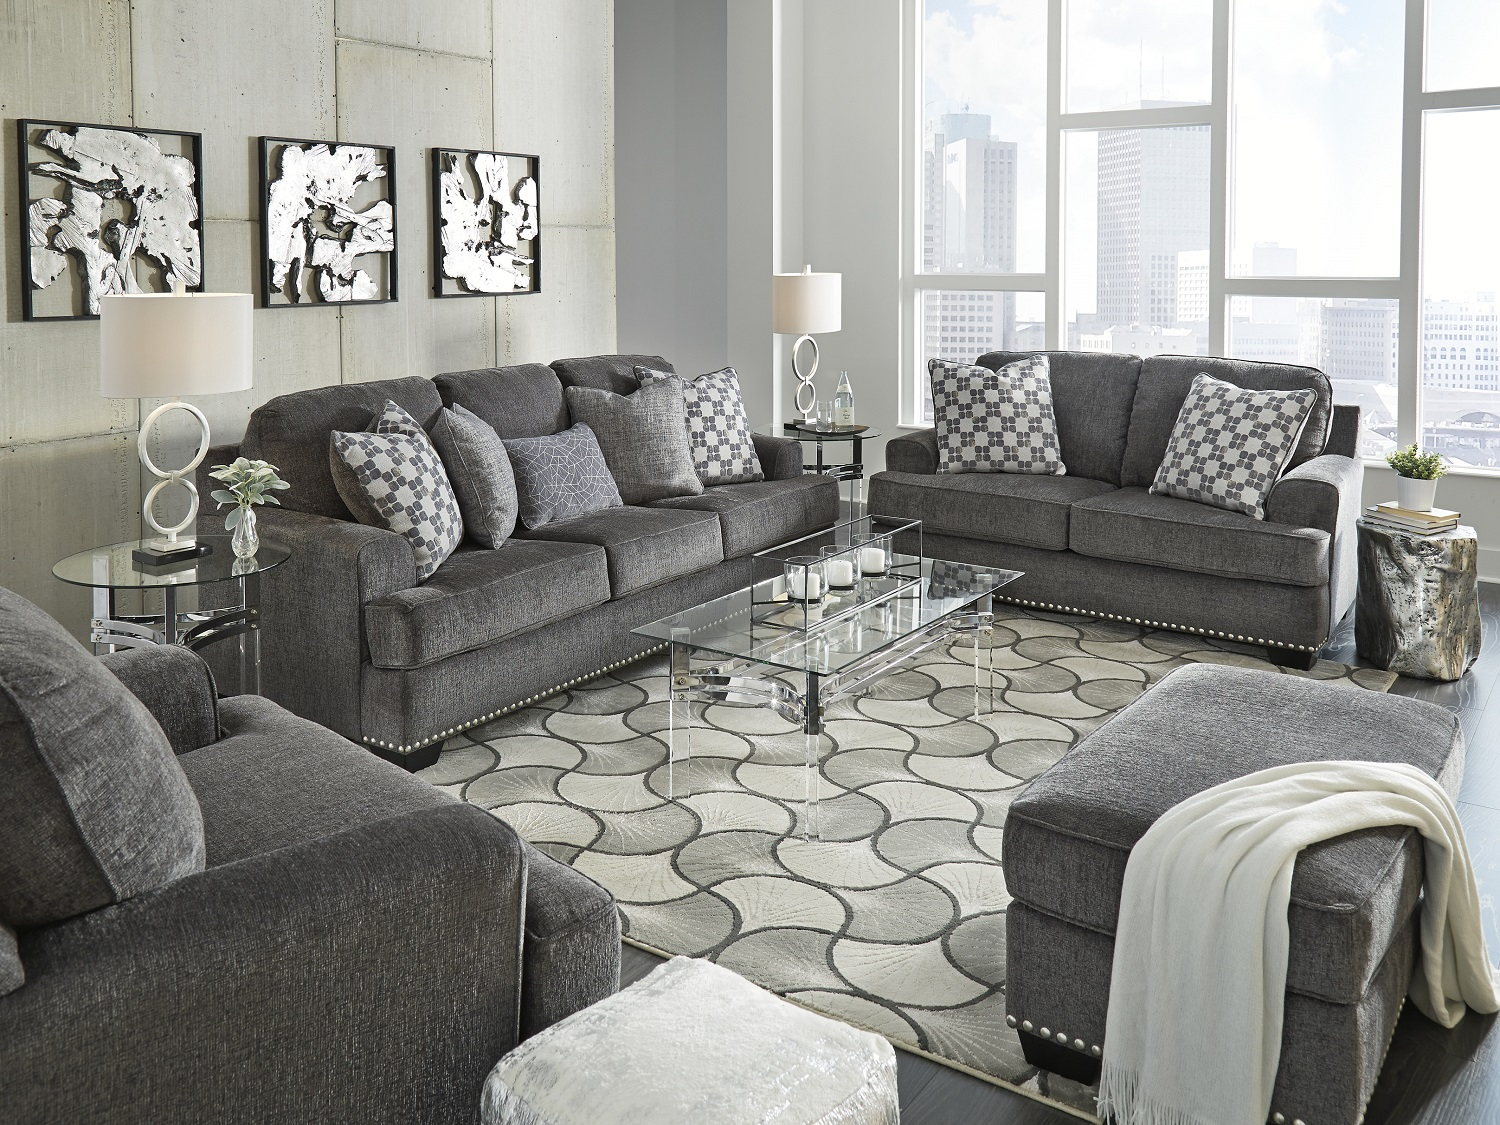 Locklin Sofa Only, 95904, Sofa Sets by Midha Furniture to Brampton, Mississauga, Etobicoke, Toronto, Scraborough, Caledon, Oakville, Markham, Ajax, Pickering, Oshawa, Richmondhill, Kitchener, Hamilton and GTA area